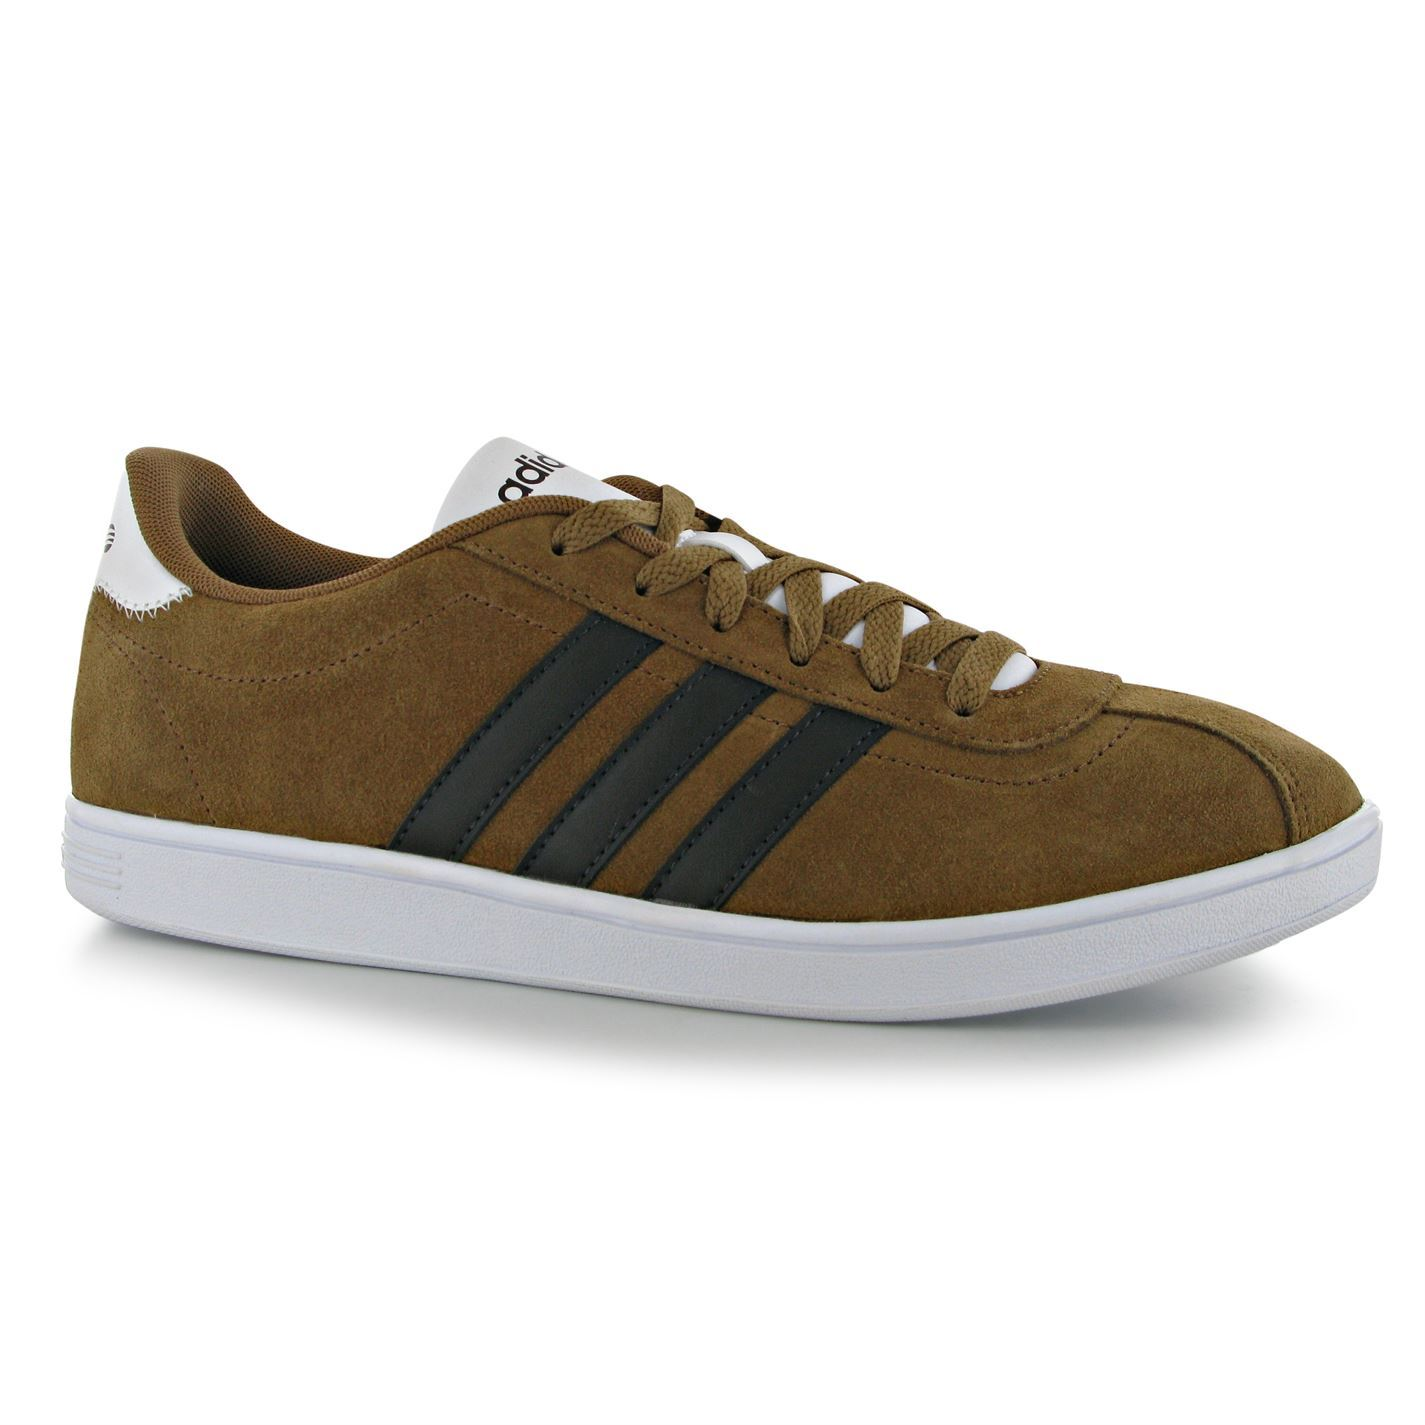 adidas vl court suede casual trainers mens timber dark brown sneakers shoes. Black Bedroom Furniture Sets. Home Design Ideas